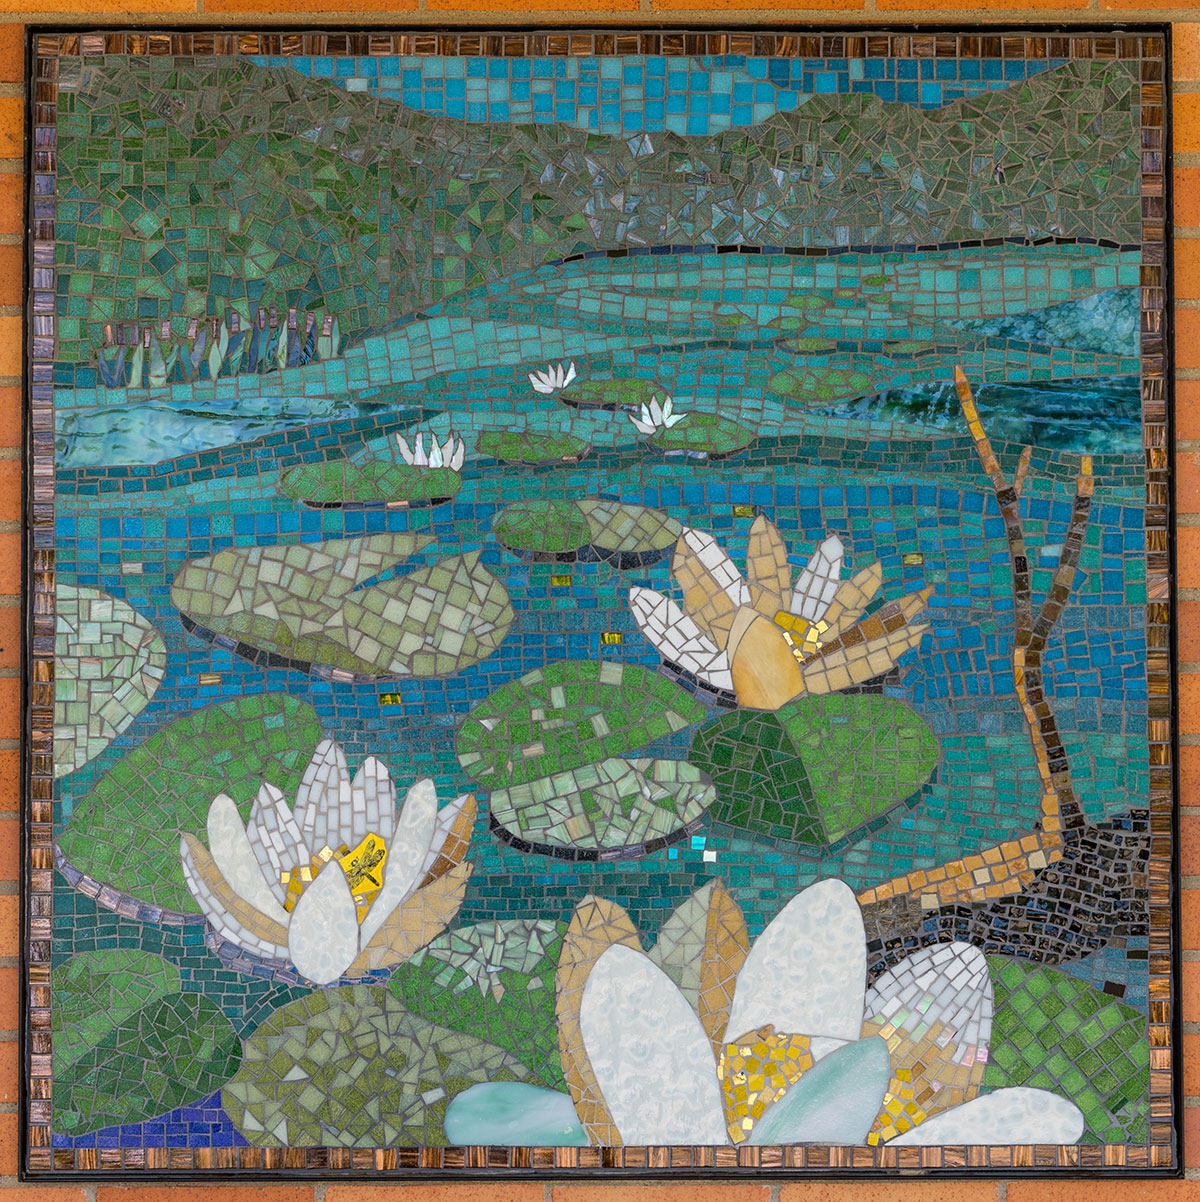 Mural depicting lily pads on a pond.